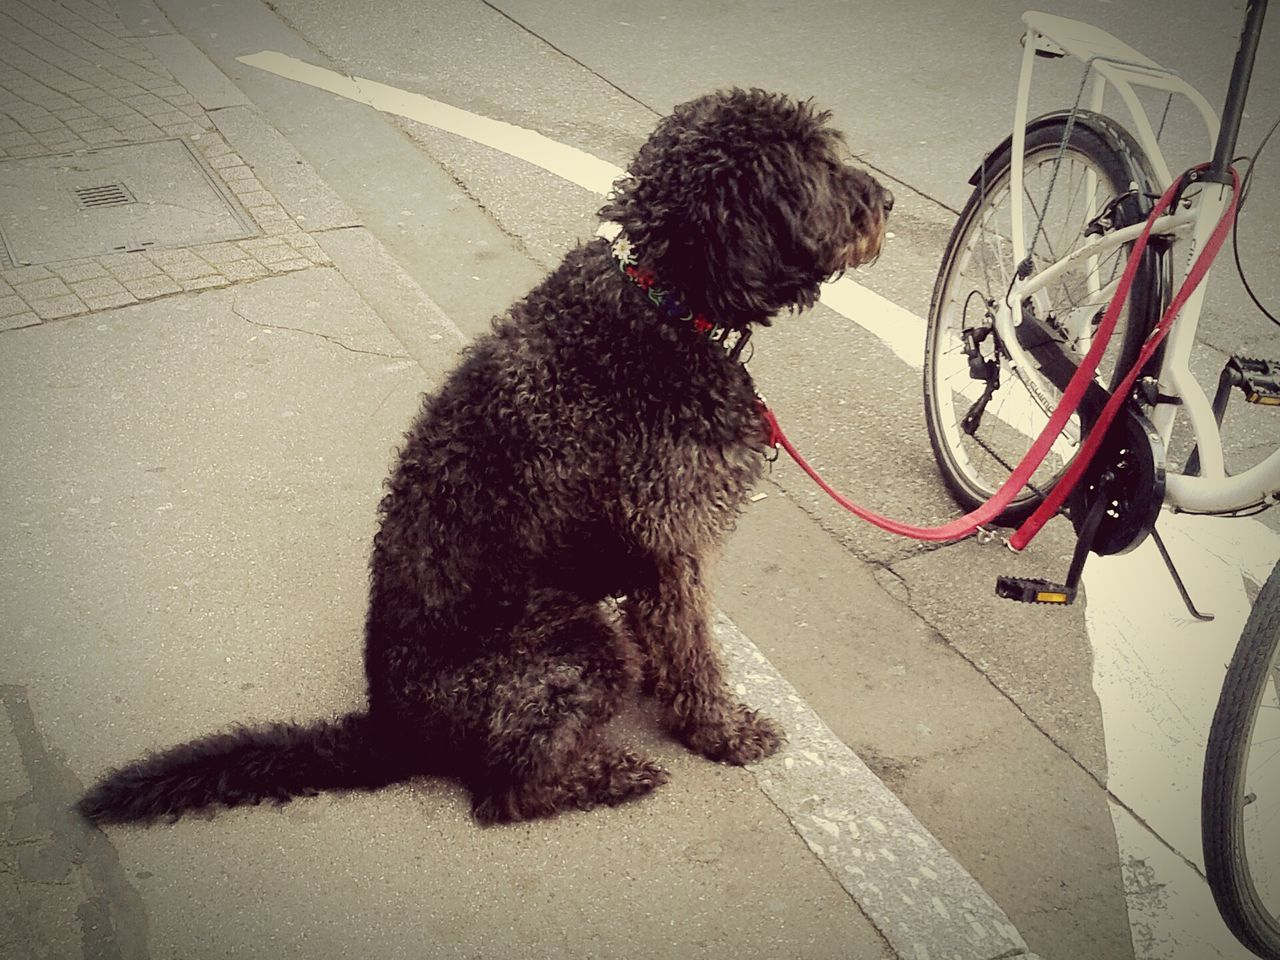 Animal Themes Domestic Animals Mammal Outdoors Lifestyles Adapted To The City City Life High Angle View One Animal No People Pets Day Dog❤ Dog Dogs Dog Love Dogslife Dogs Of EyeEm Doglover